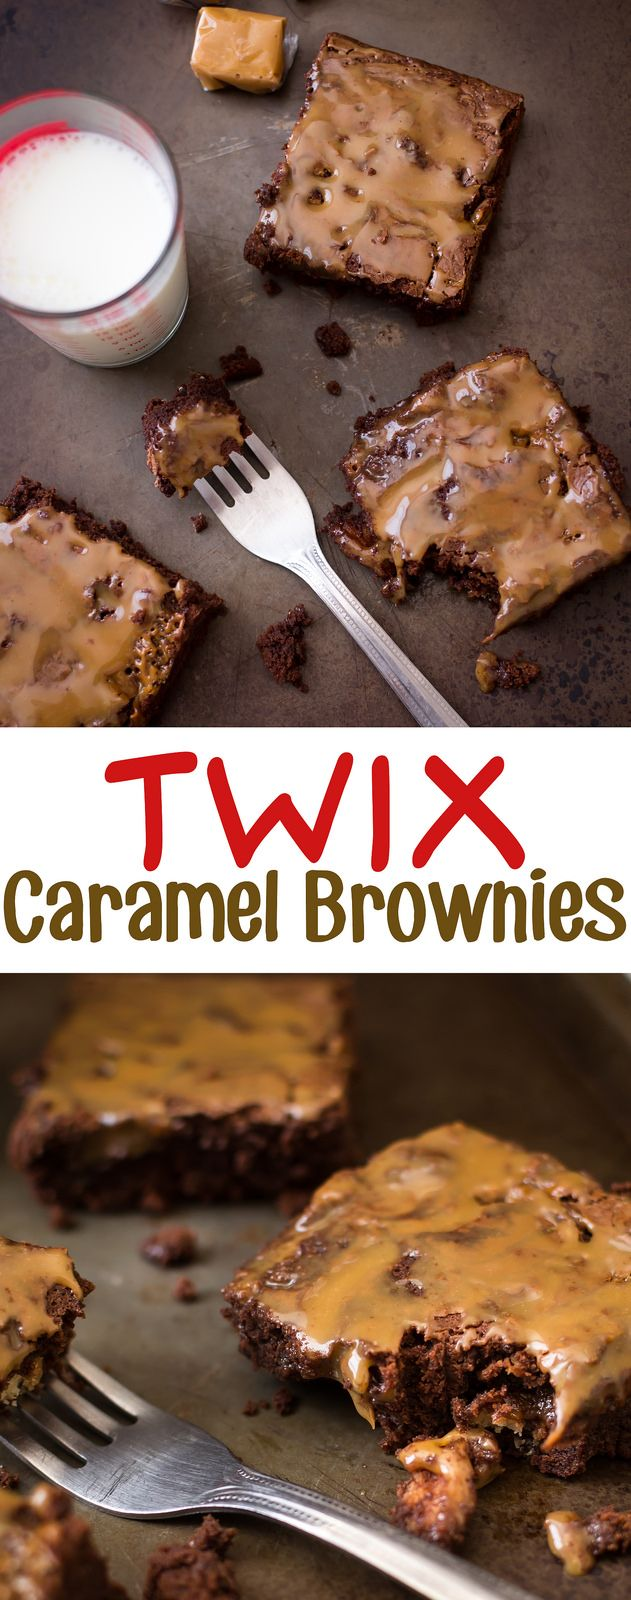 Little Spice Jar | TWIX CARAMEL BROWNIES | http://www.littlespicejar ...